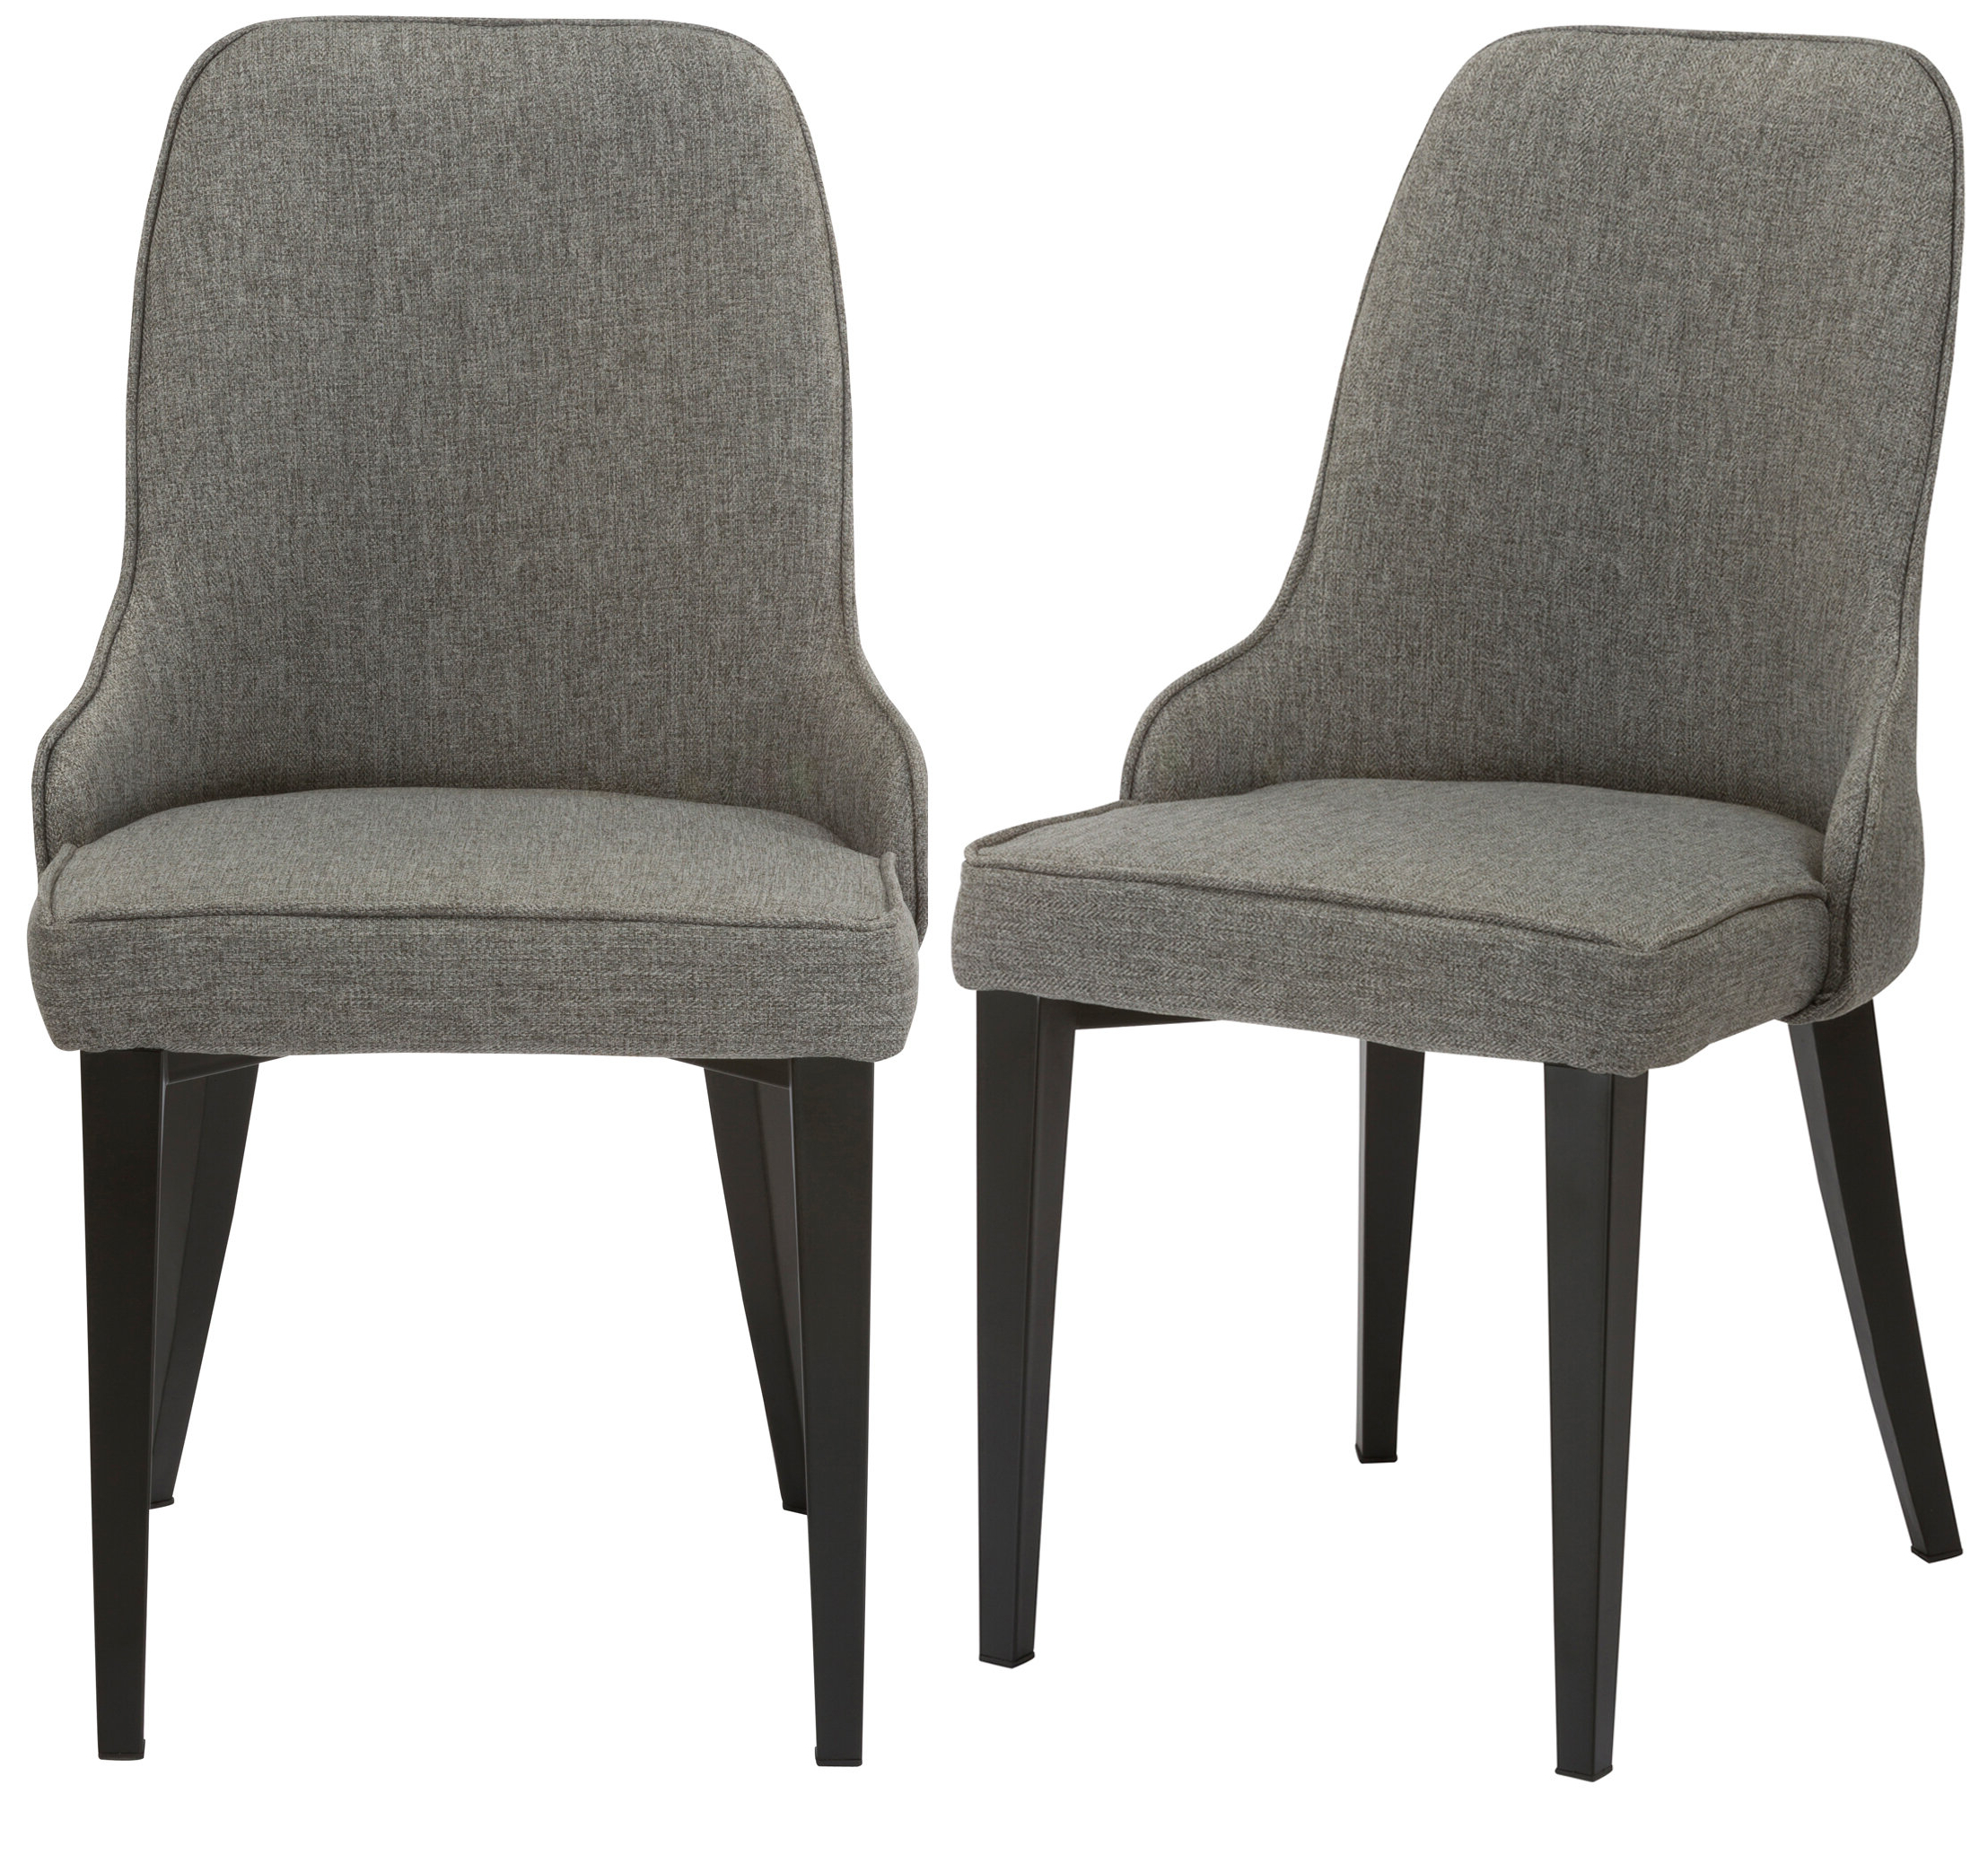 Best And Newest Erasmus Upholstered Metal Dining Chair Intended For Erasmus Side Chairs (View 12 of 20)